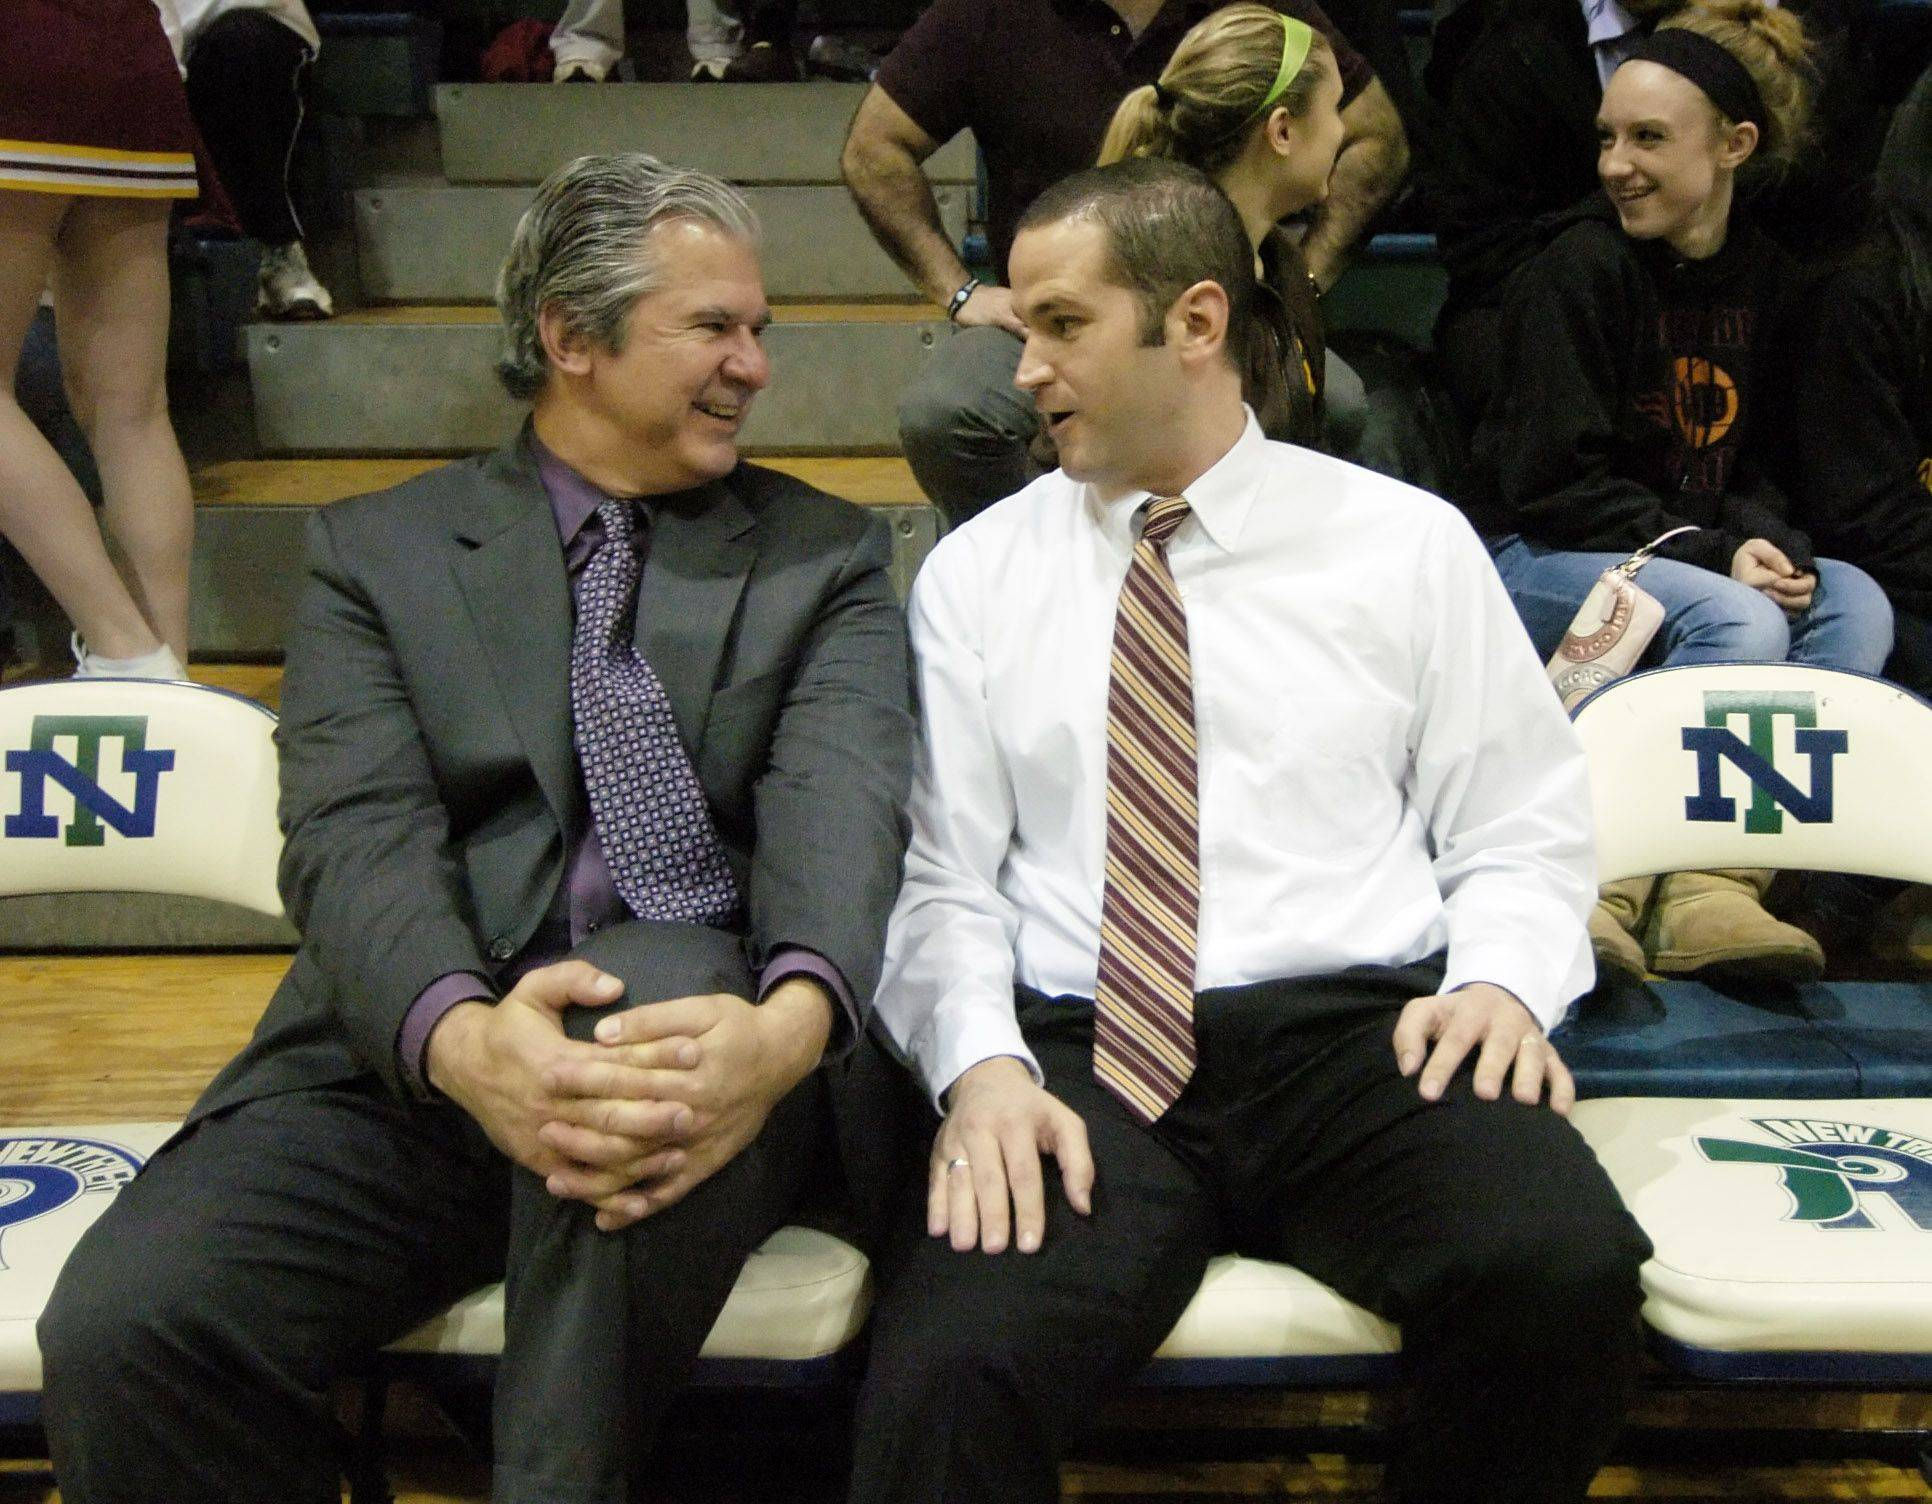 Niles West coach Bob Williams, formerly the head coach of the Schaumburg boys basketball team, talks with current Schaumburg coach Matt Walsh .